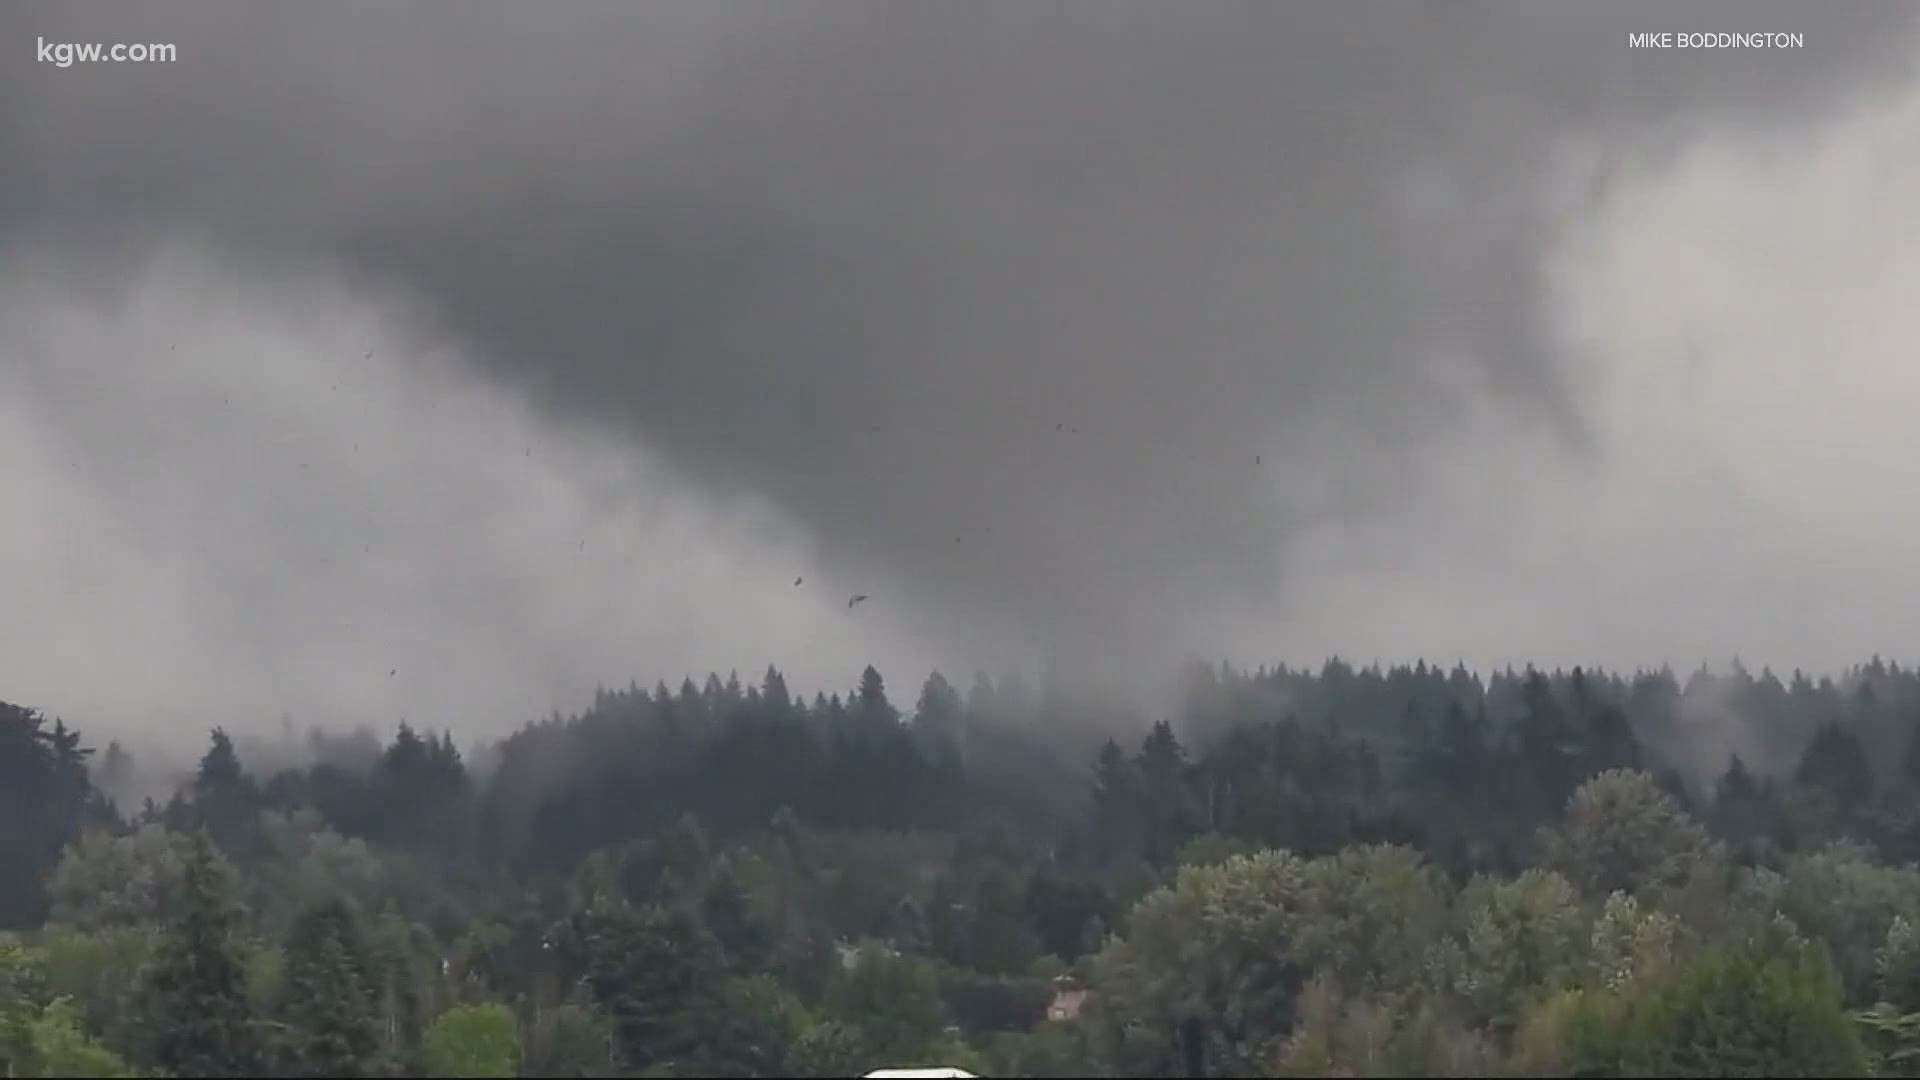 Funnel Cloud Reported In Damascus Nws Confirms Kgw Com Hundreds of homes in oregon are gone as growing wildfires, fueled in part by strong winds, substantially destroyed sections of several communities, gov. possible tornado causes damage in clackamas county